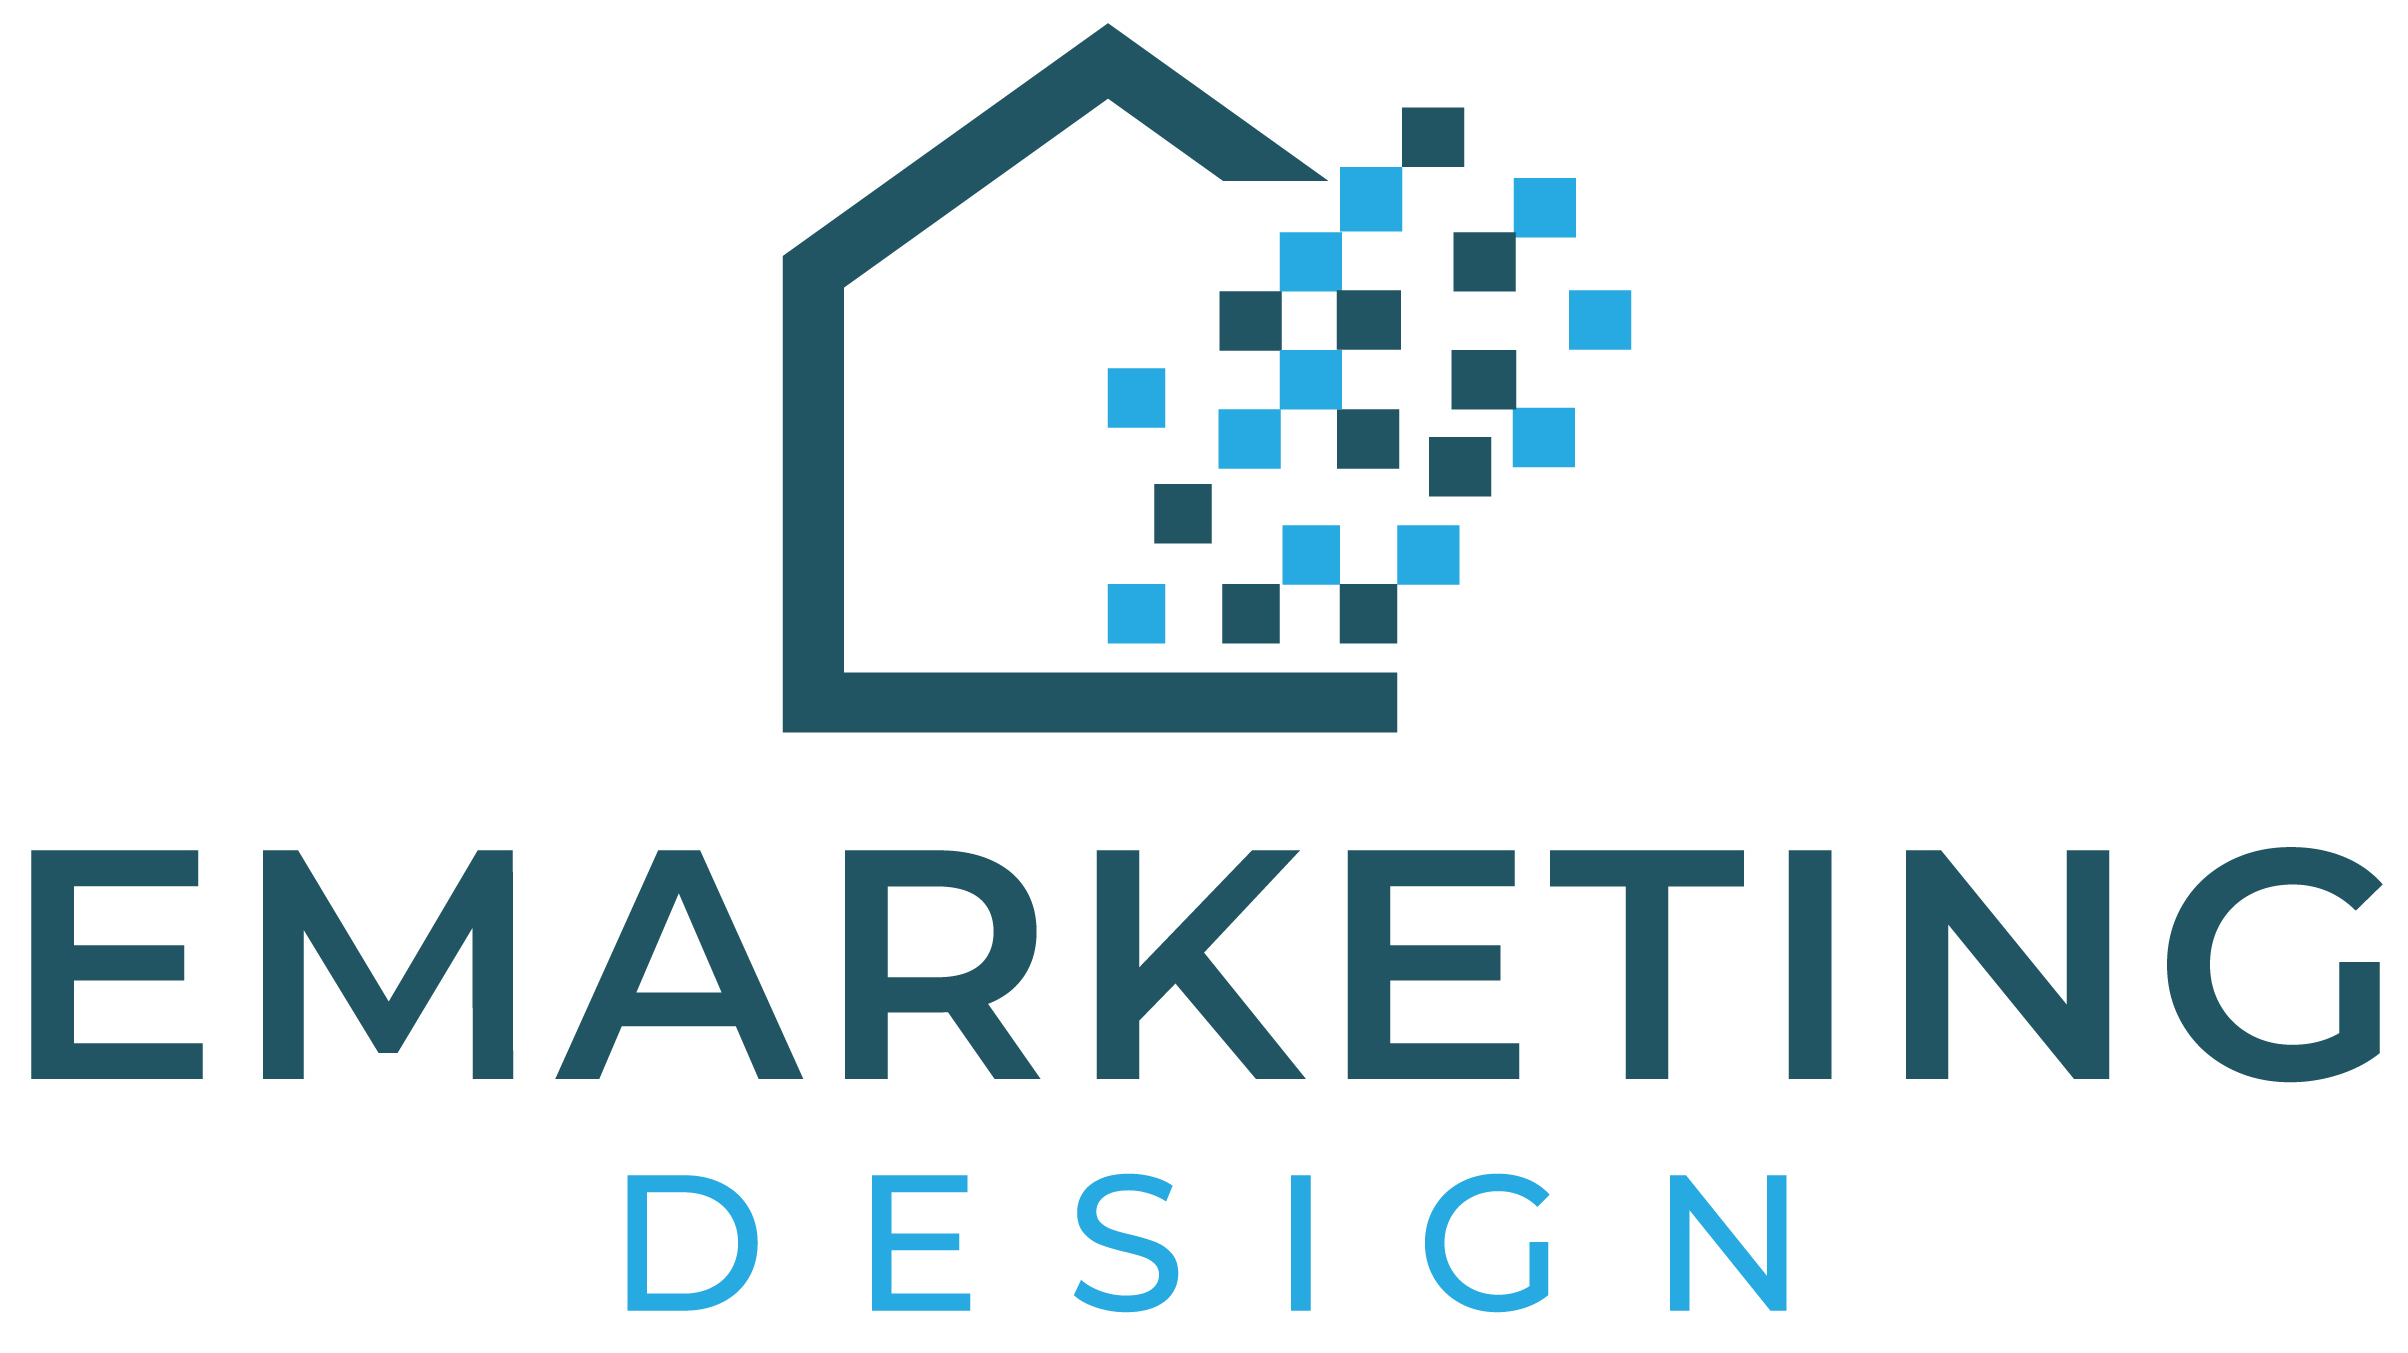 EMarketing Design